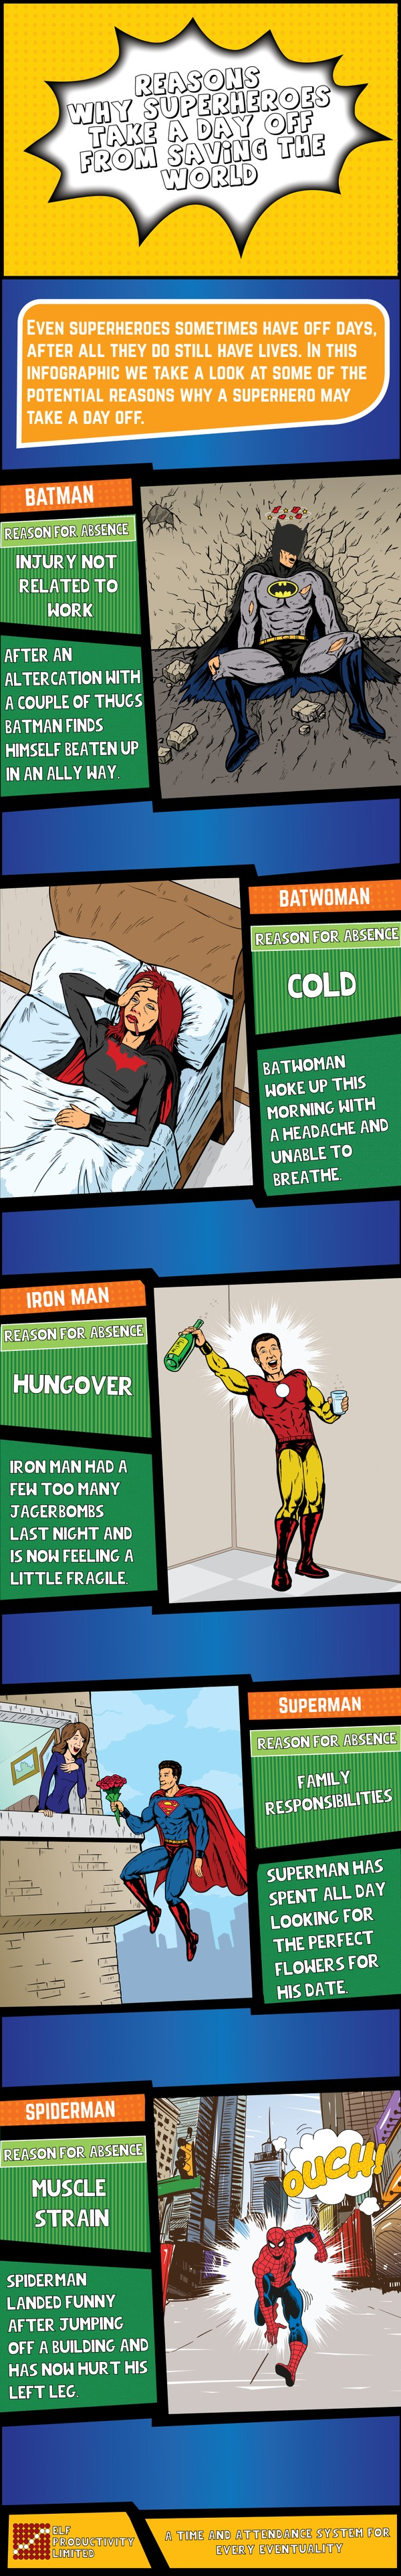 Reasons Why Superheroes Take A Day Off